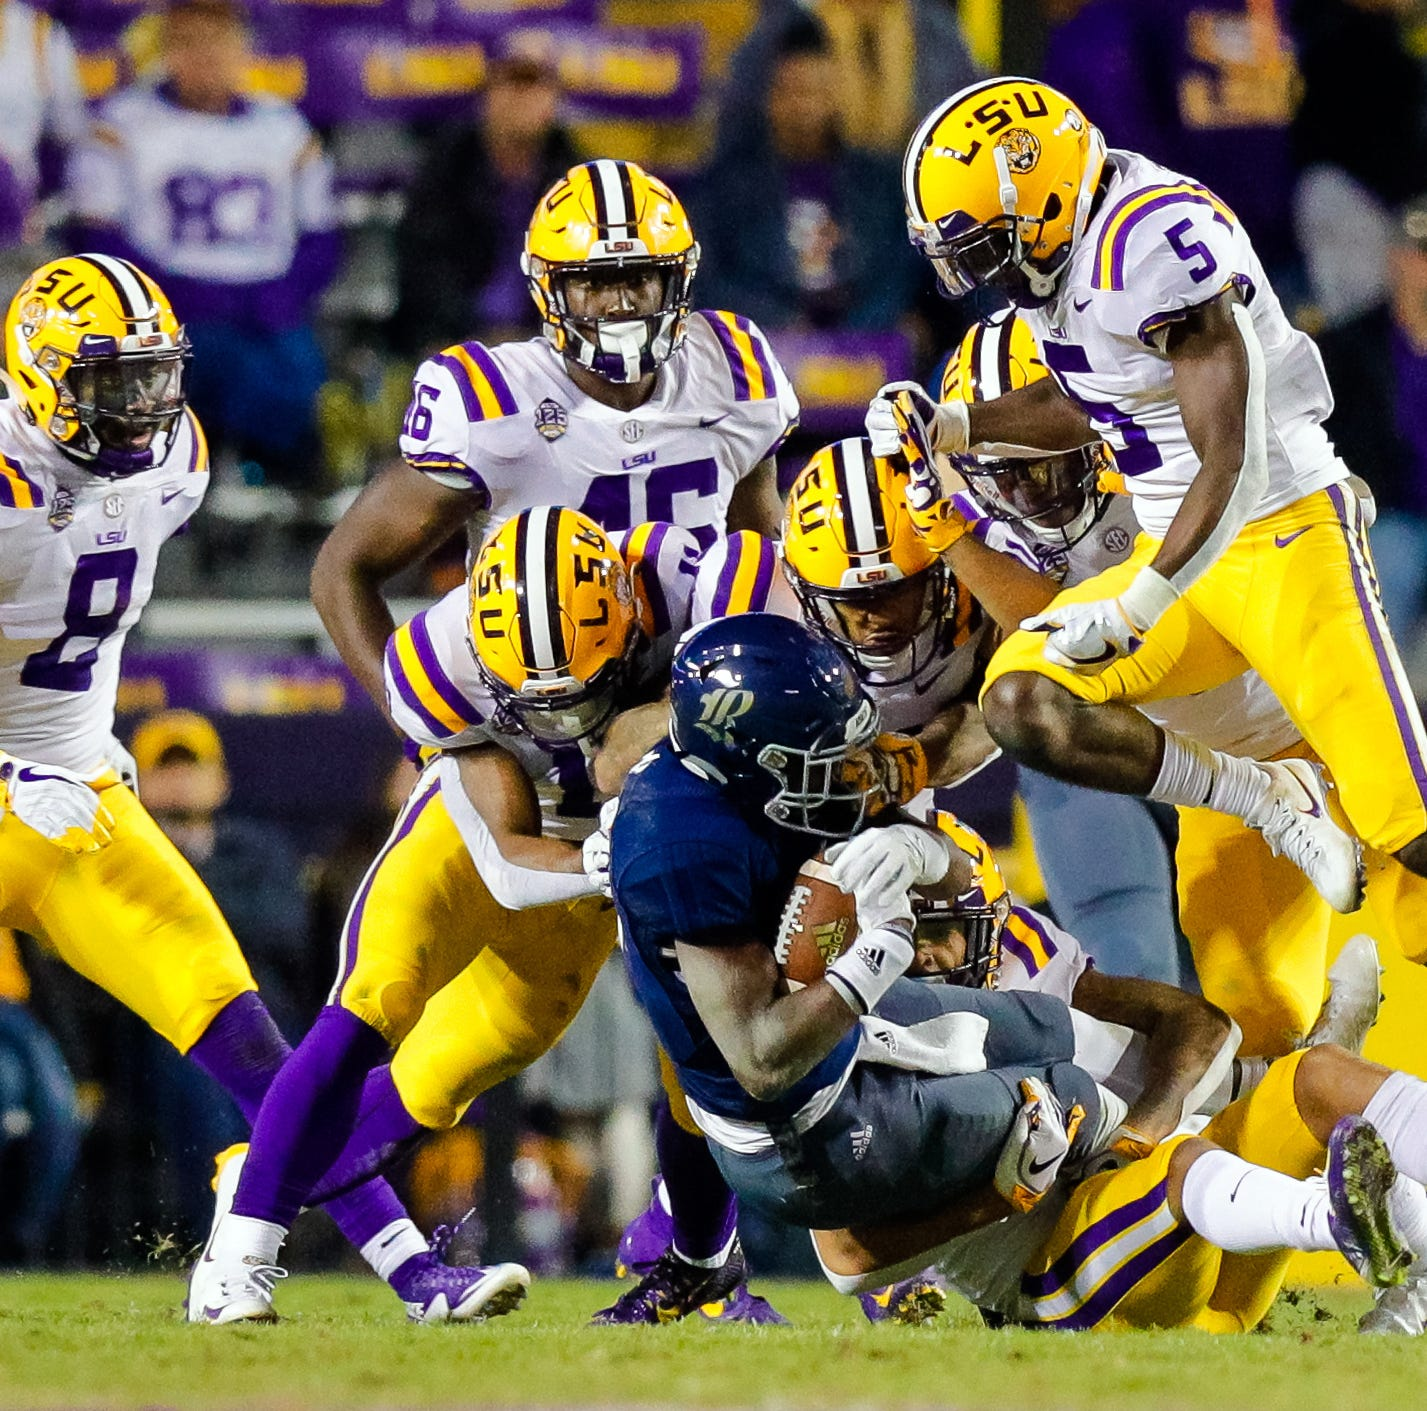 LSU rips Rice, 42-10, but with the point spread, that would be a 54-42 win for the Owls